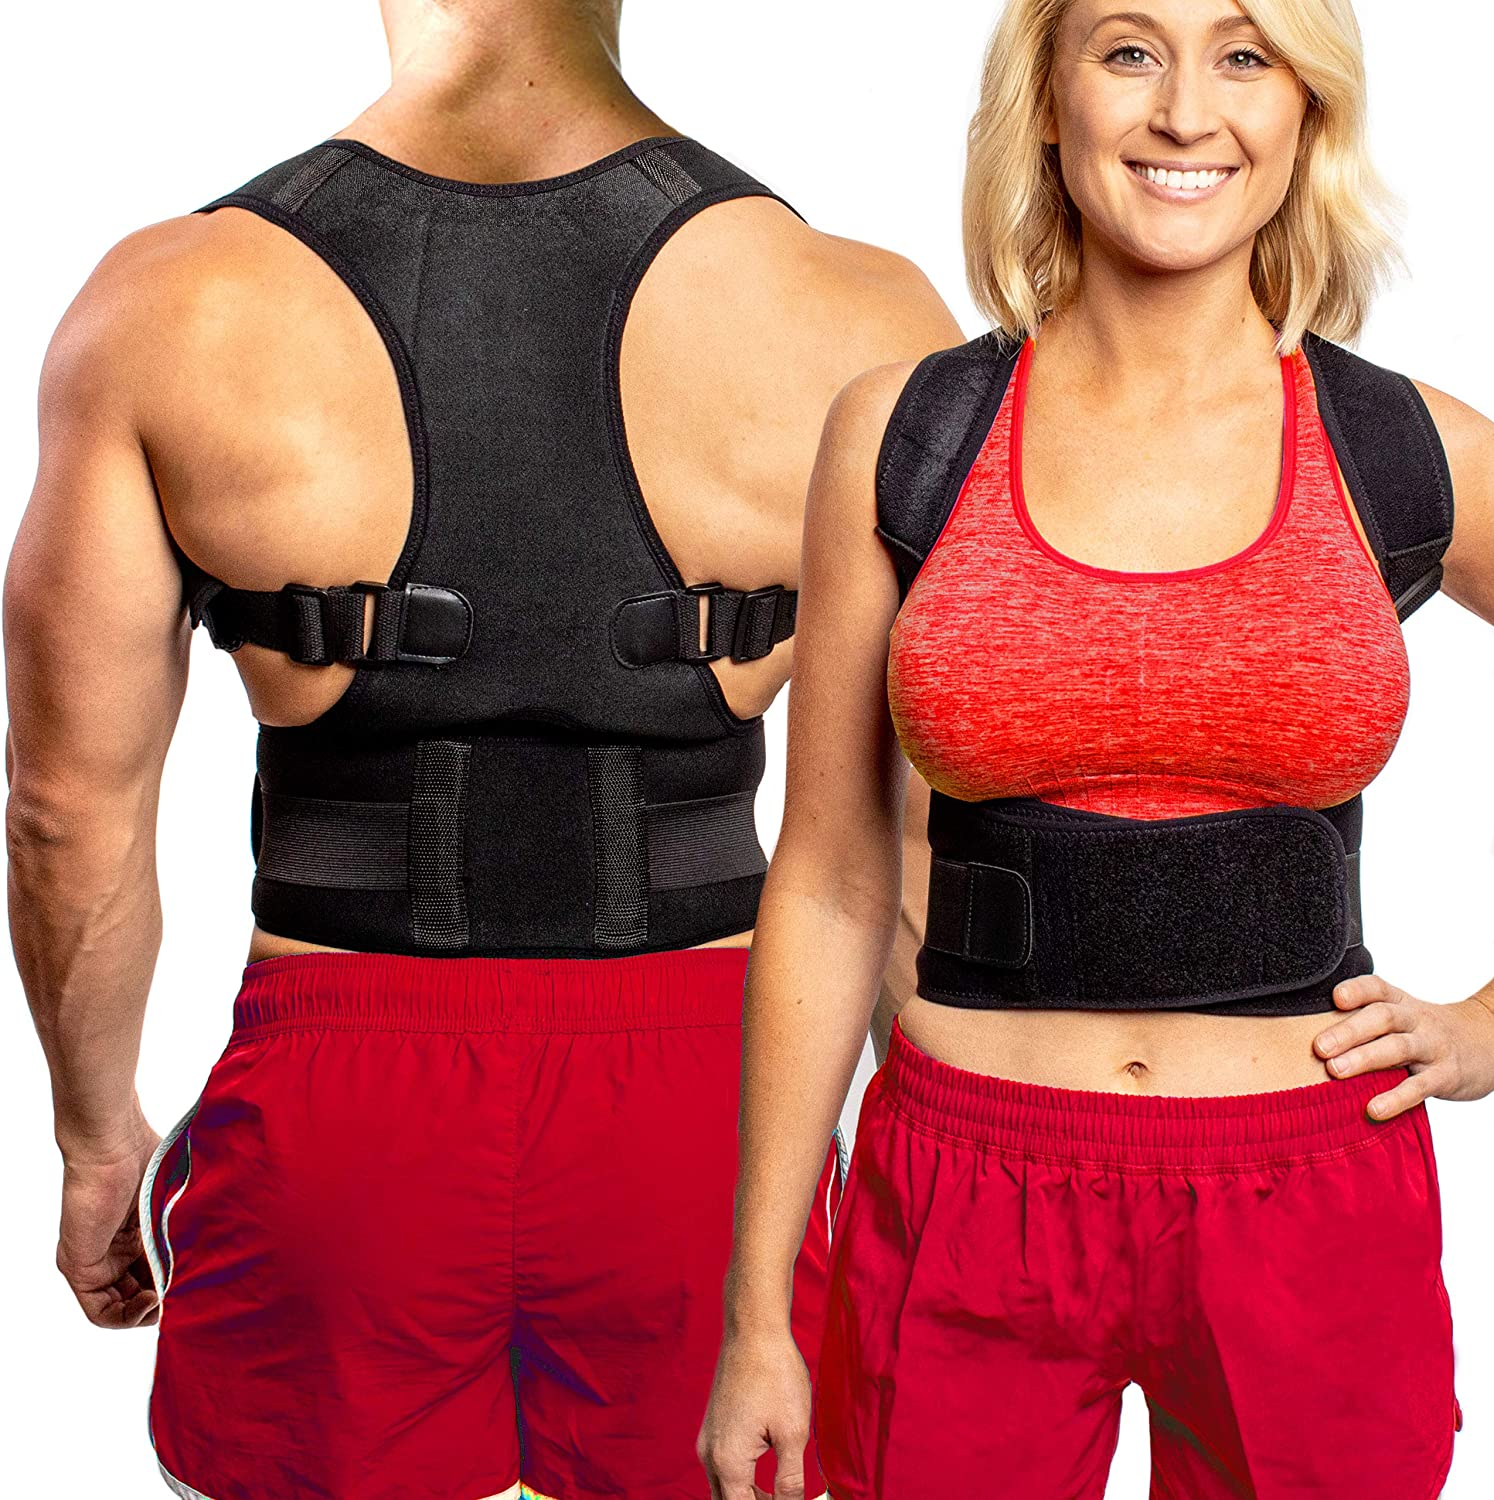 Back Brace Posture Corrector - Best Fully Adjustable Support Brace - Improves Posture and Provides Lumbar Support